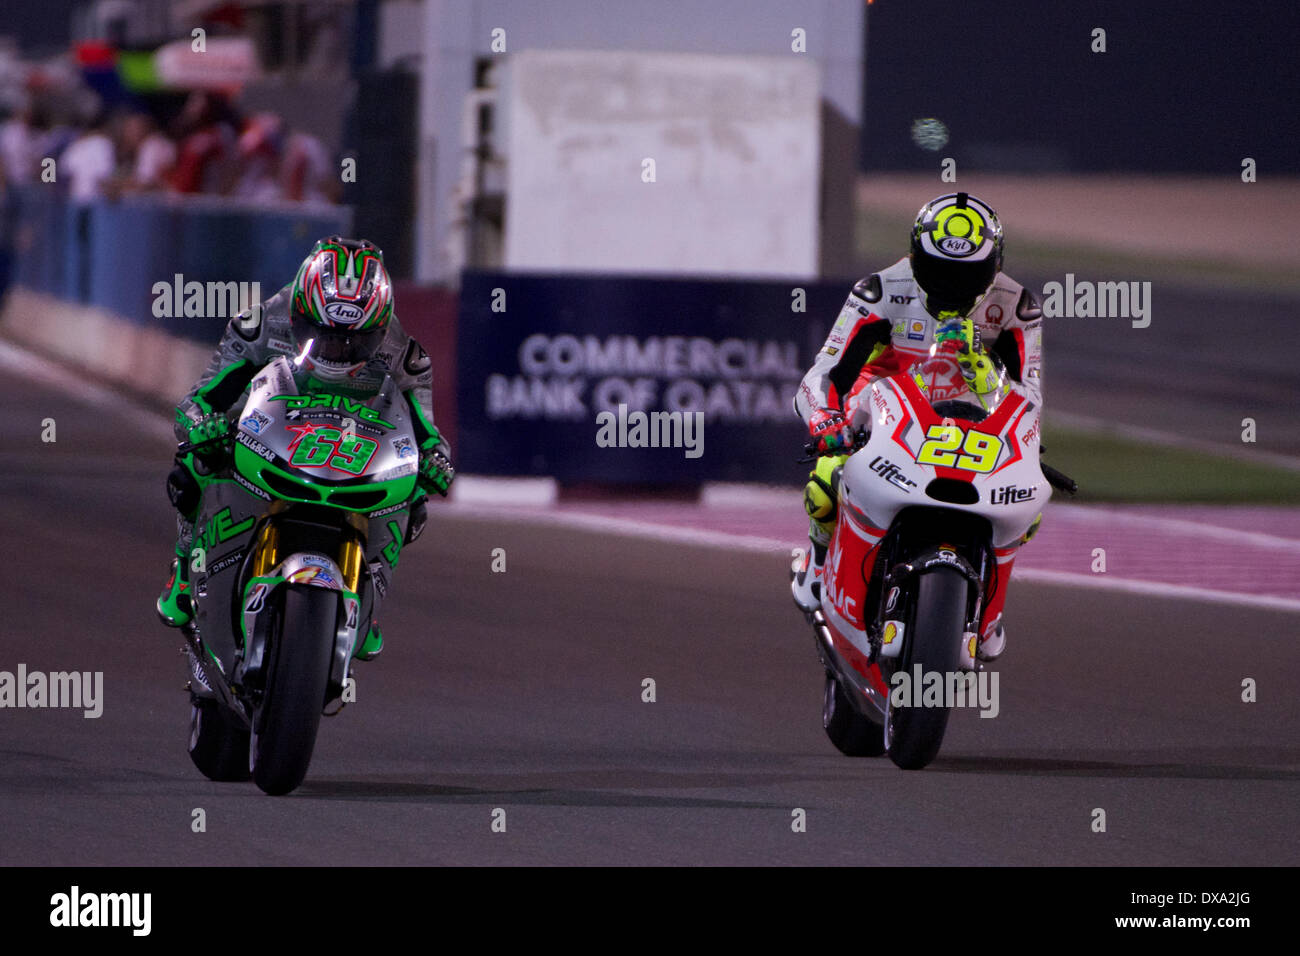 losail-circuit-qatar-20th-march-2014-and